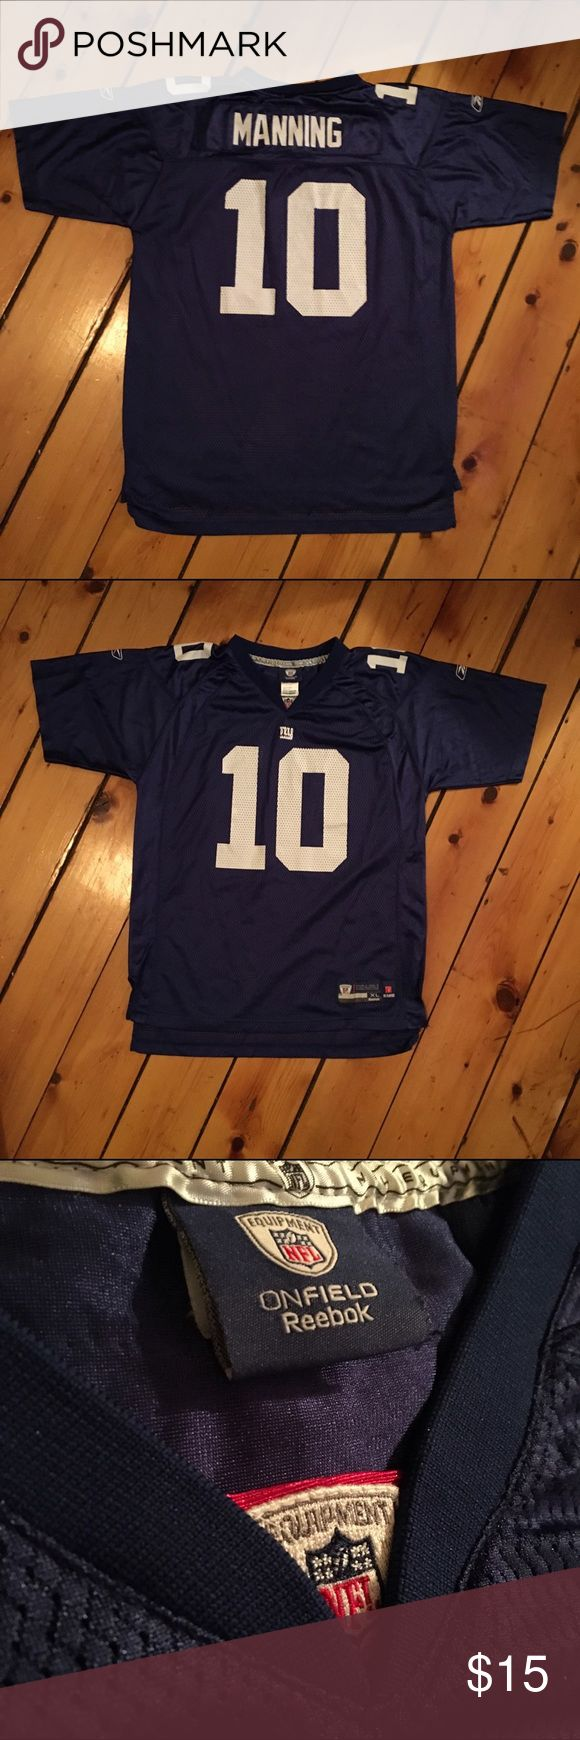 Eli Manning NY GIANTS Jersey Show off your NYG fan style with this game day jersey. Perfect for anyone looking for a new draft pick for a NFL collection *Sized at Kids XL - Fits Adult S/M* Reebok Shirts